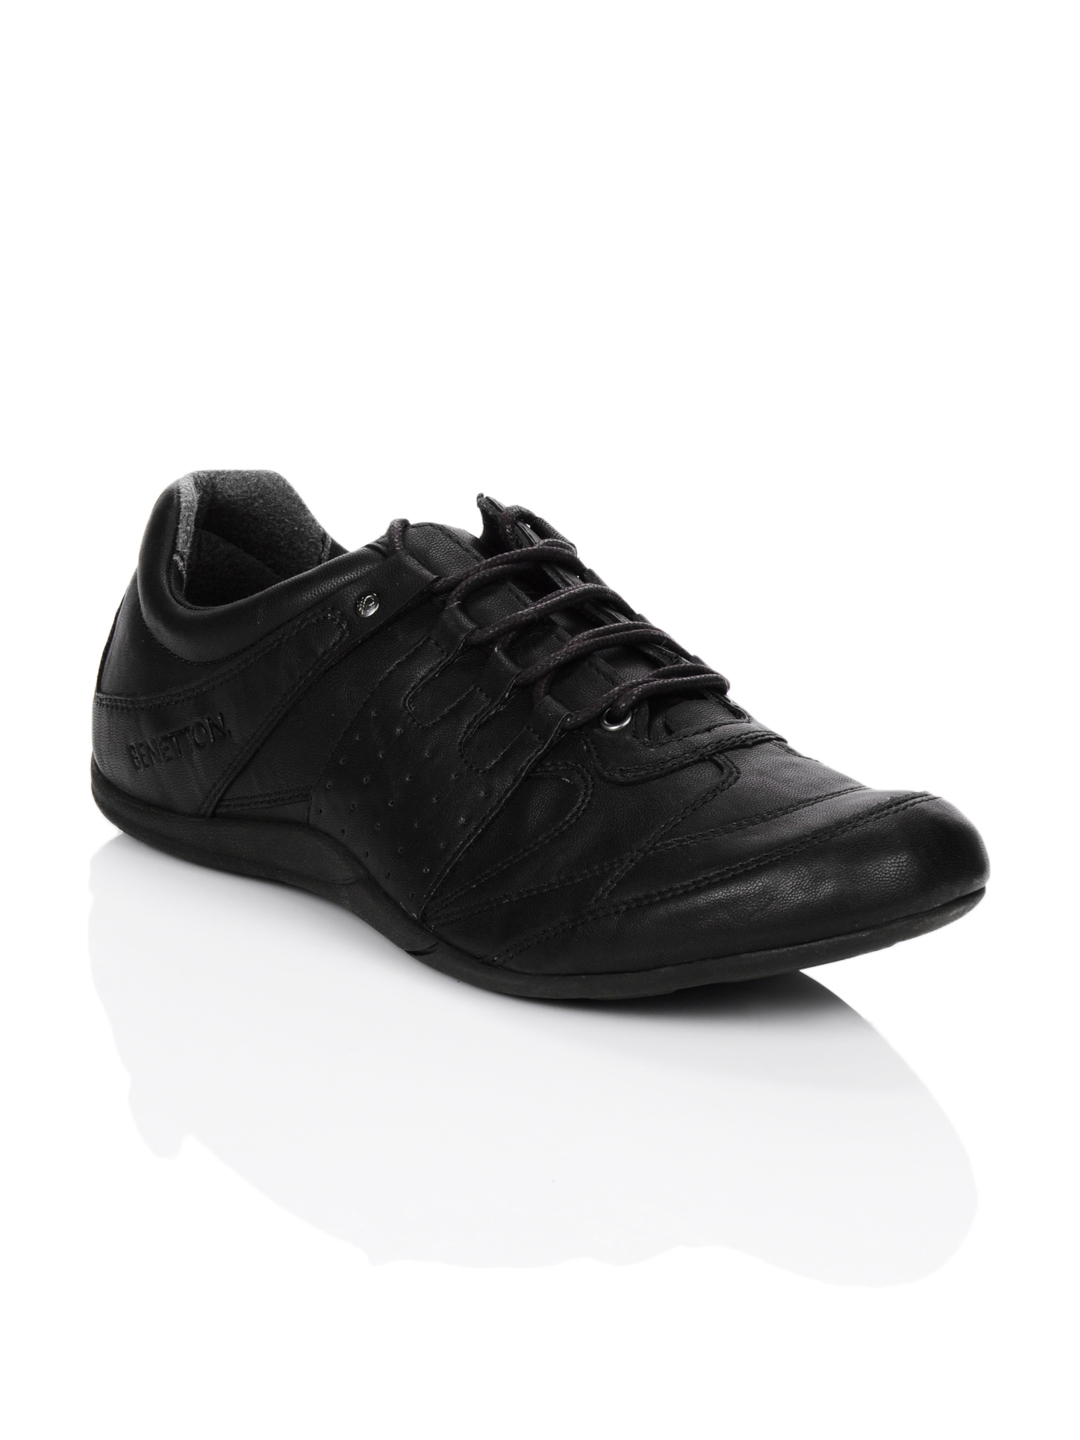 United Colors of Benetton Men Black Shoes